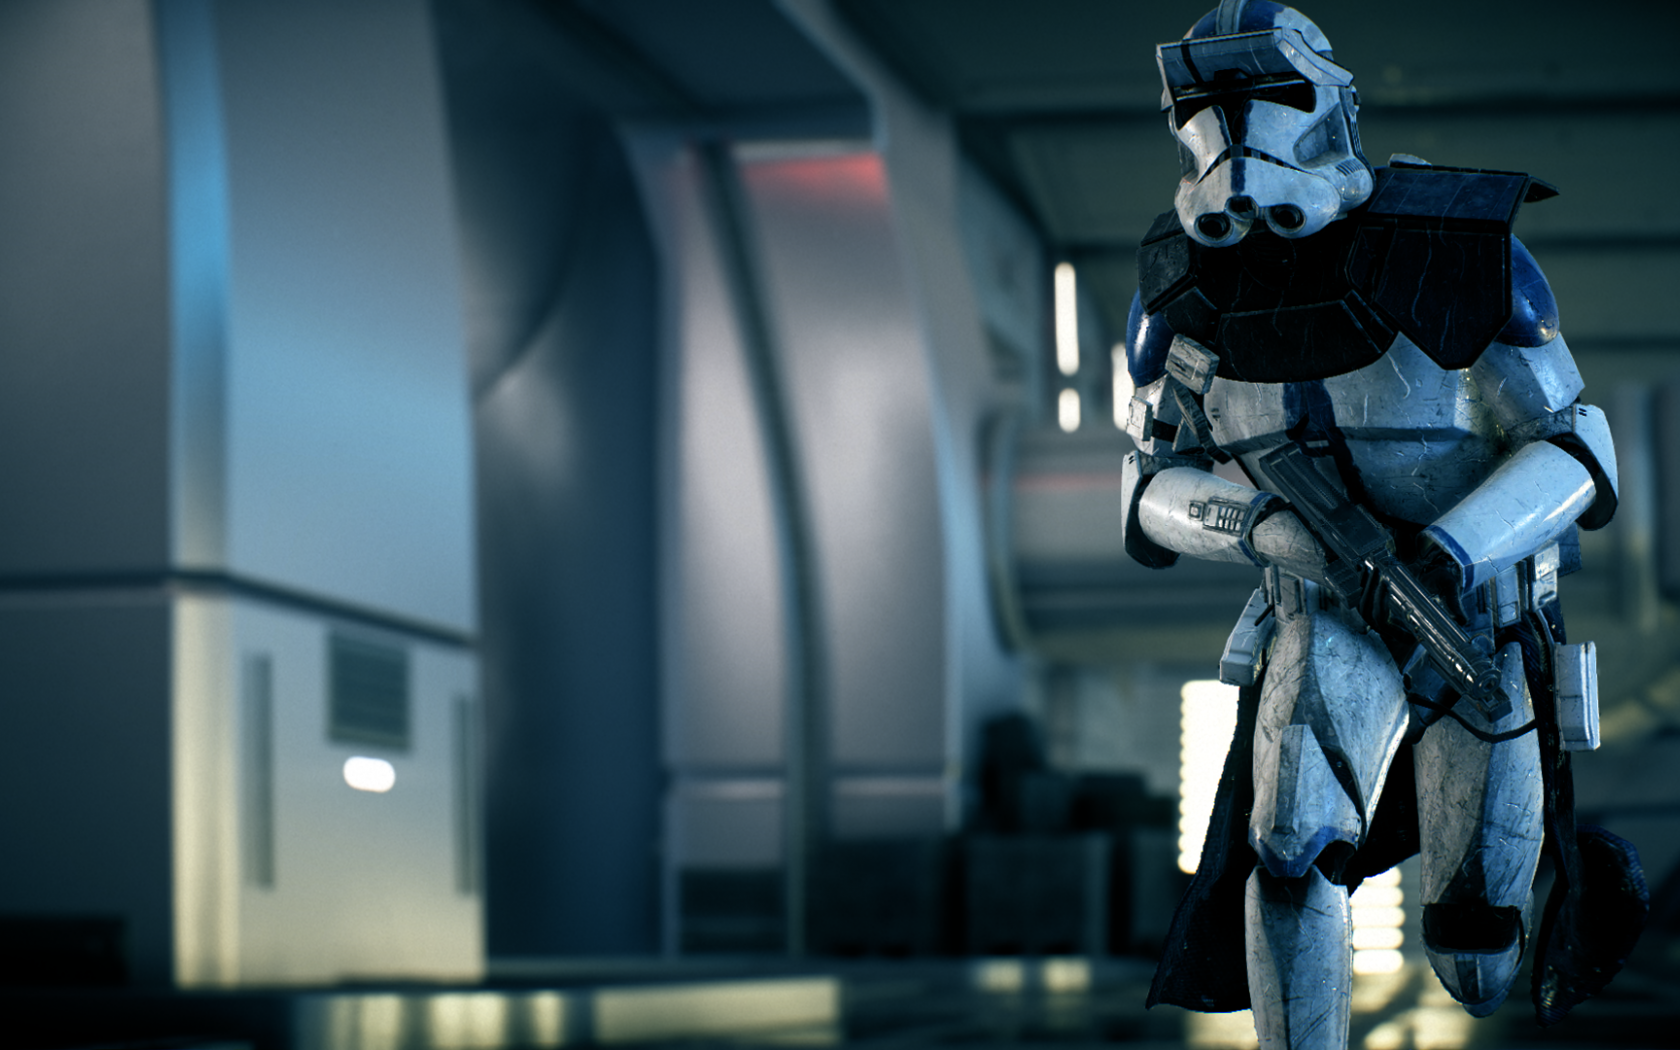 Free Download 501st Legion By Orthohex At Star Wars Battlefront Ii 2017 Nexus 1920x1080 For Your Desktop Mobile Tablet Explore 55 501st Wallpaper 501st Wallpaper 501st Clone Trooper Wallpaper